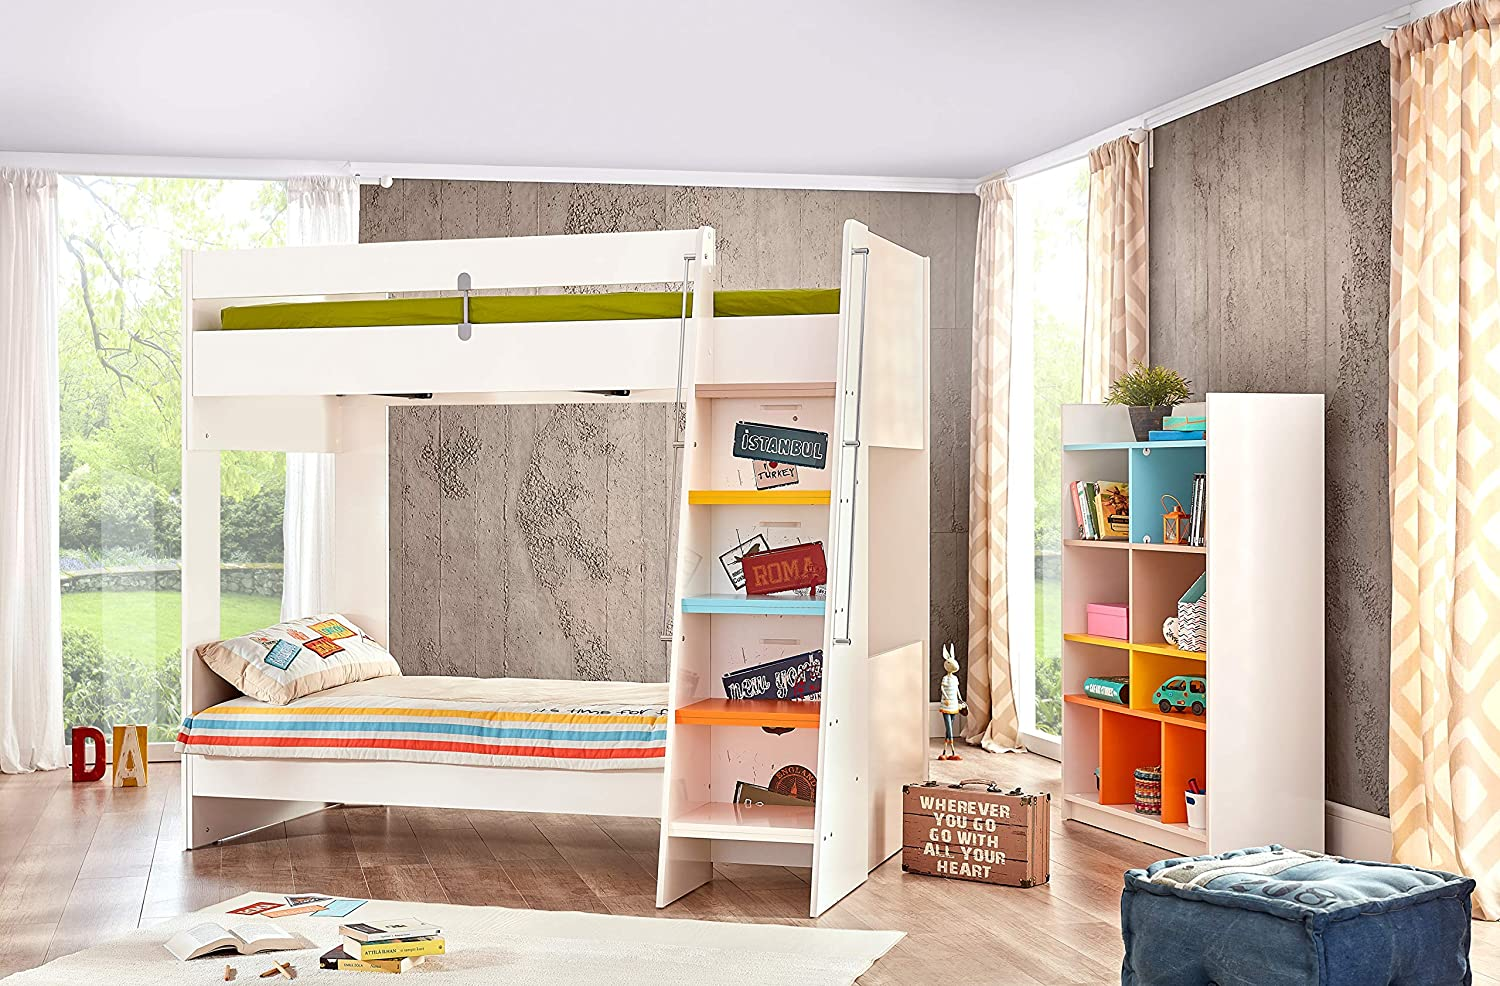 KIDOMATE Joy in Kids Bedroom Furniture Set with Bunk Bed and ...